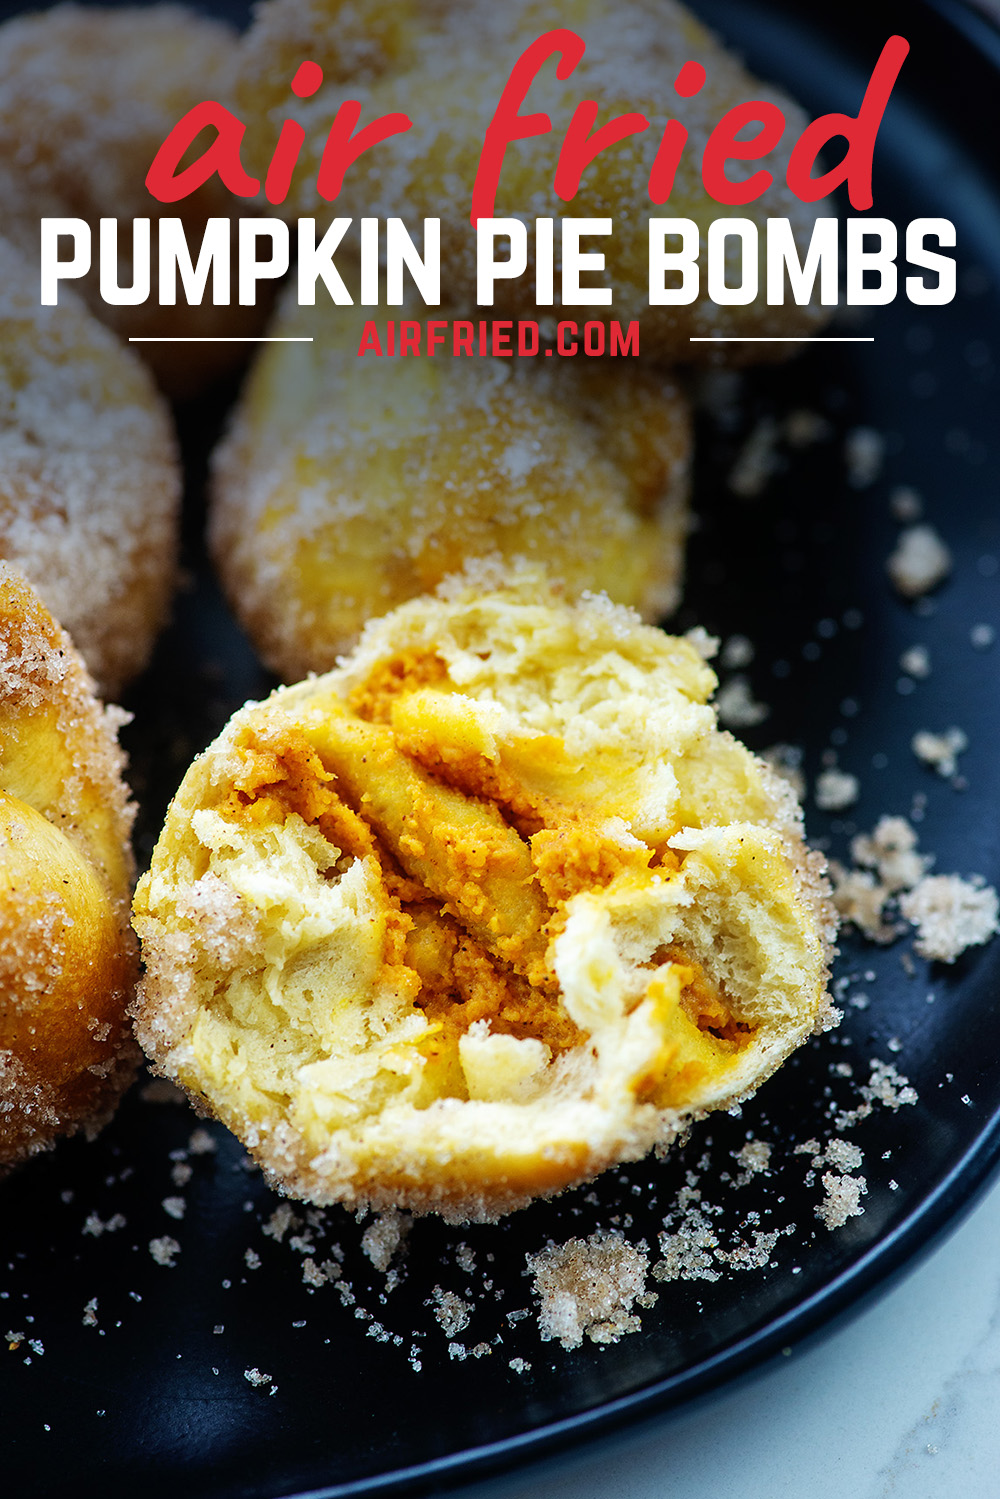 Pumpkin donut bombs filled with pumpkin pie filling and coated in cinnamon sugar. These are so easy in the air fryer. #airfryer #pumpkinrecipes #frieddonuts